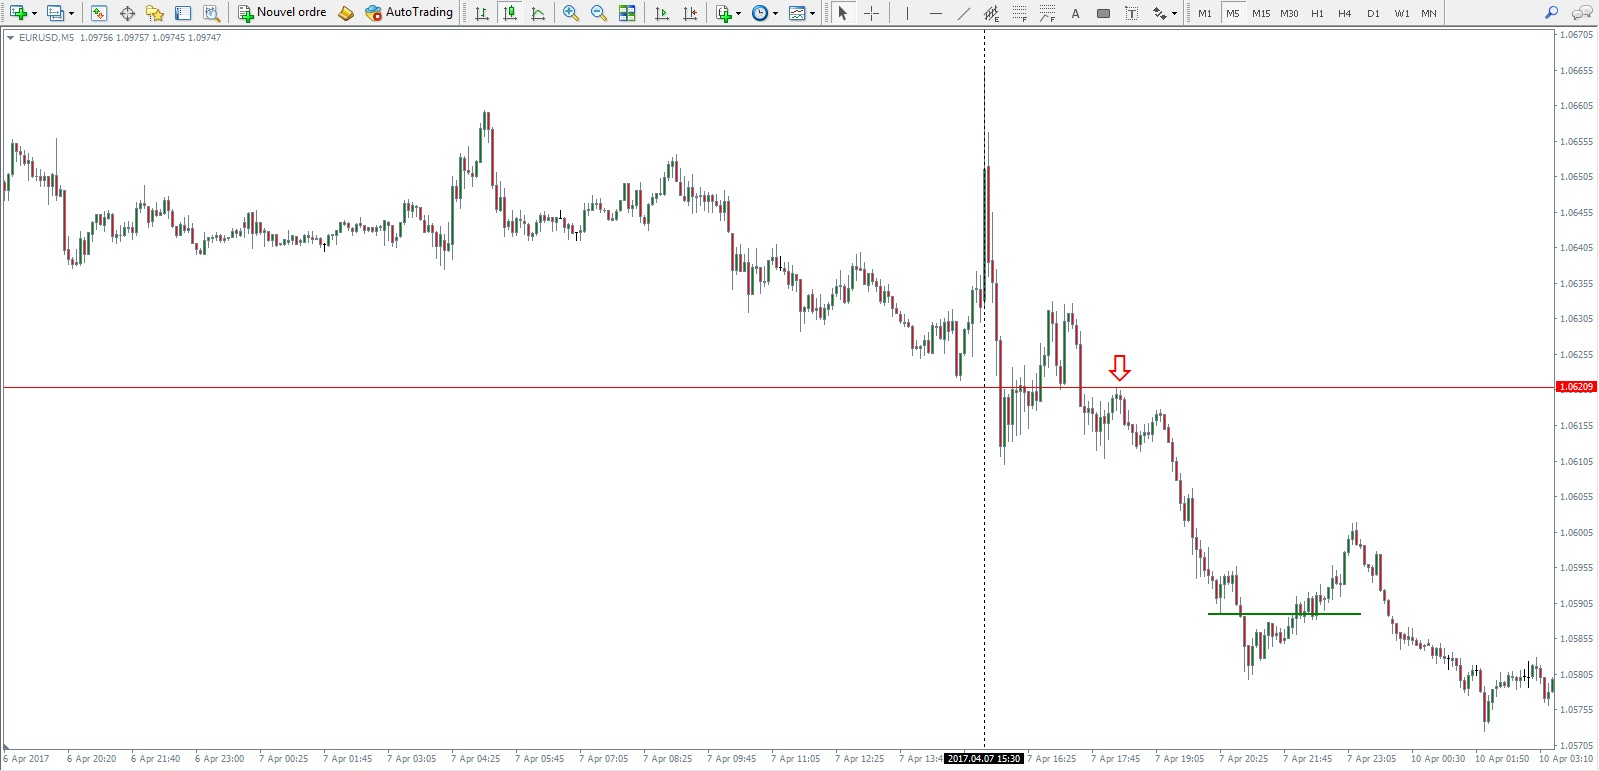 Nfp in forex